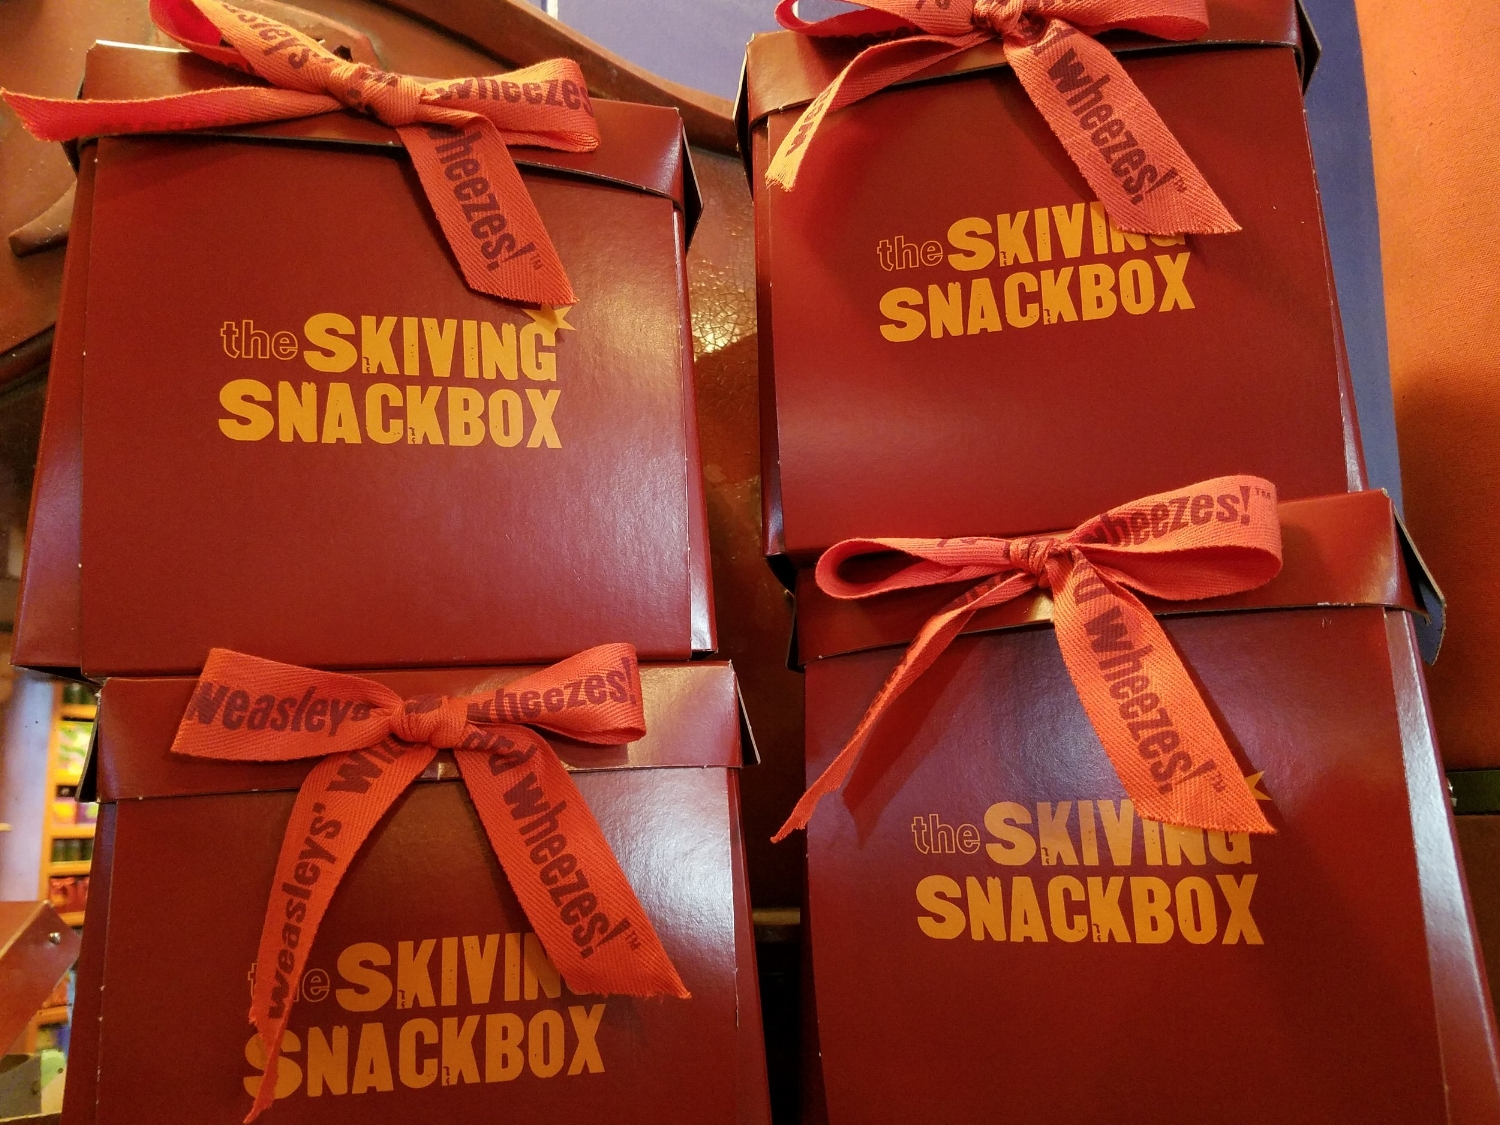 Skiving Snackboxes for sale at Weasley's Wizard Wheezes.